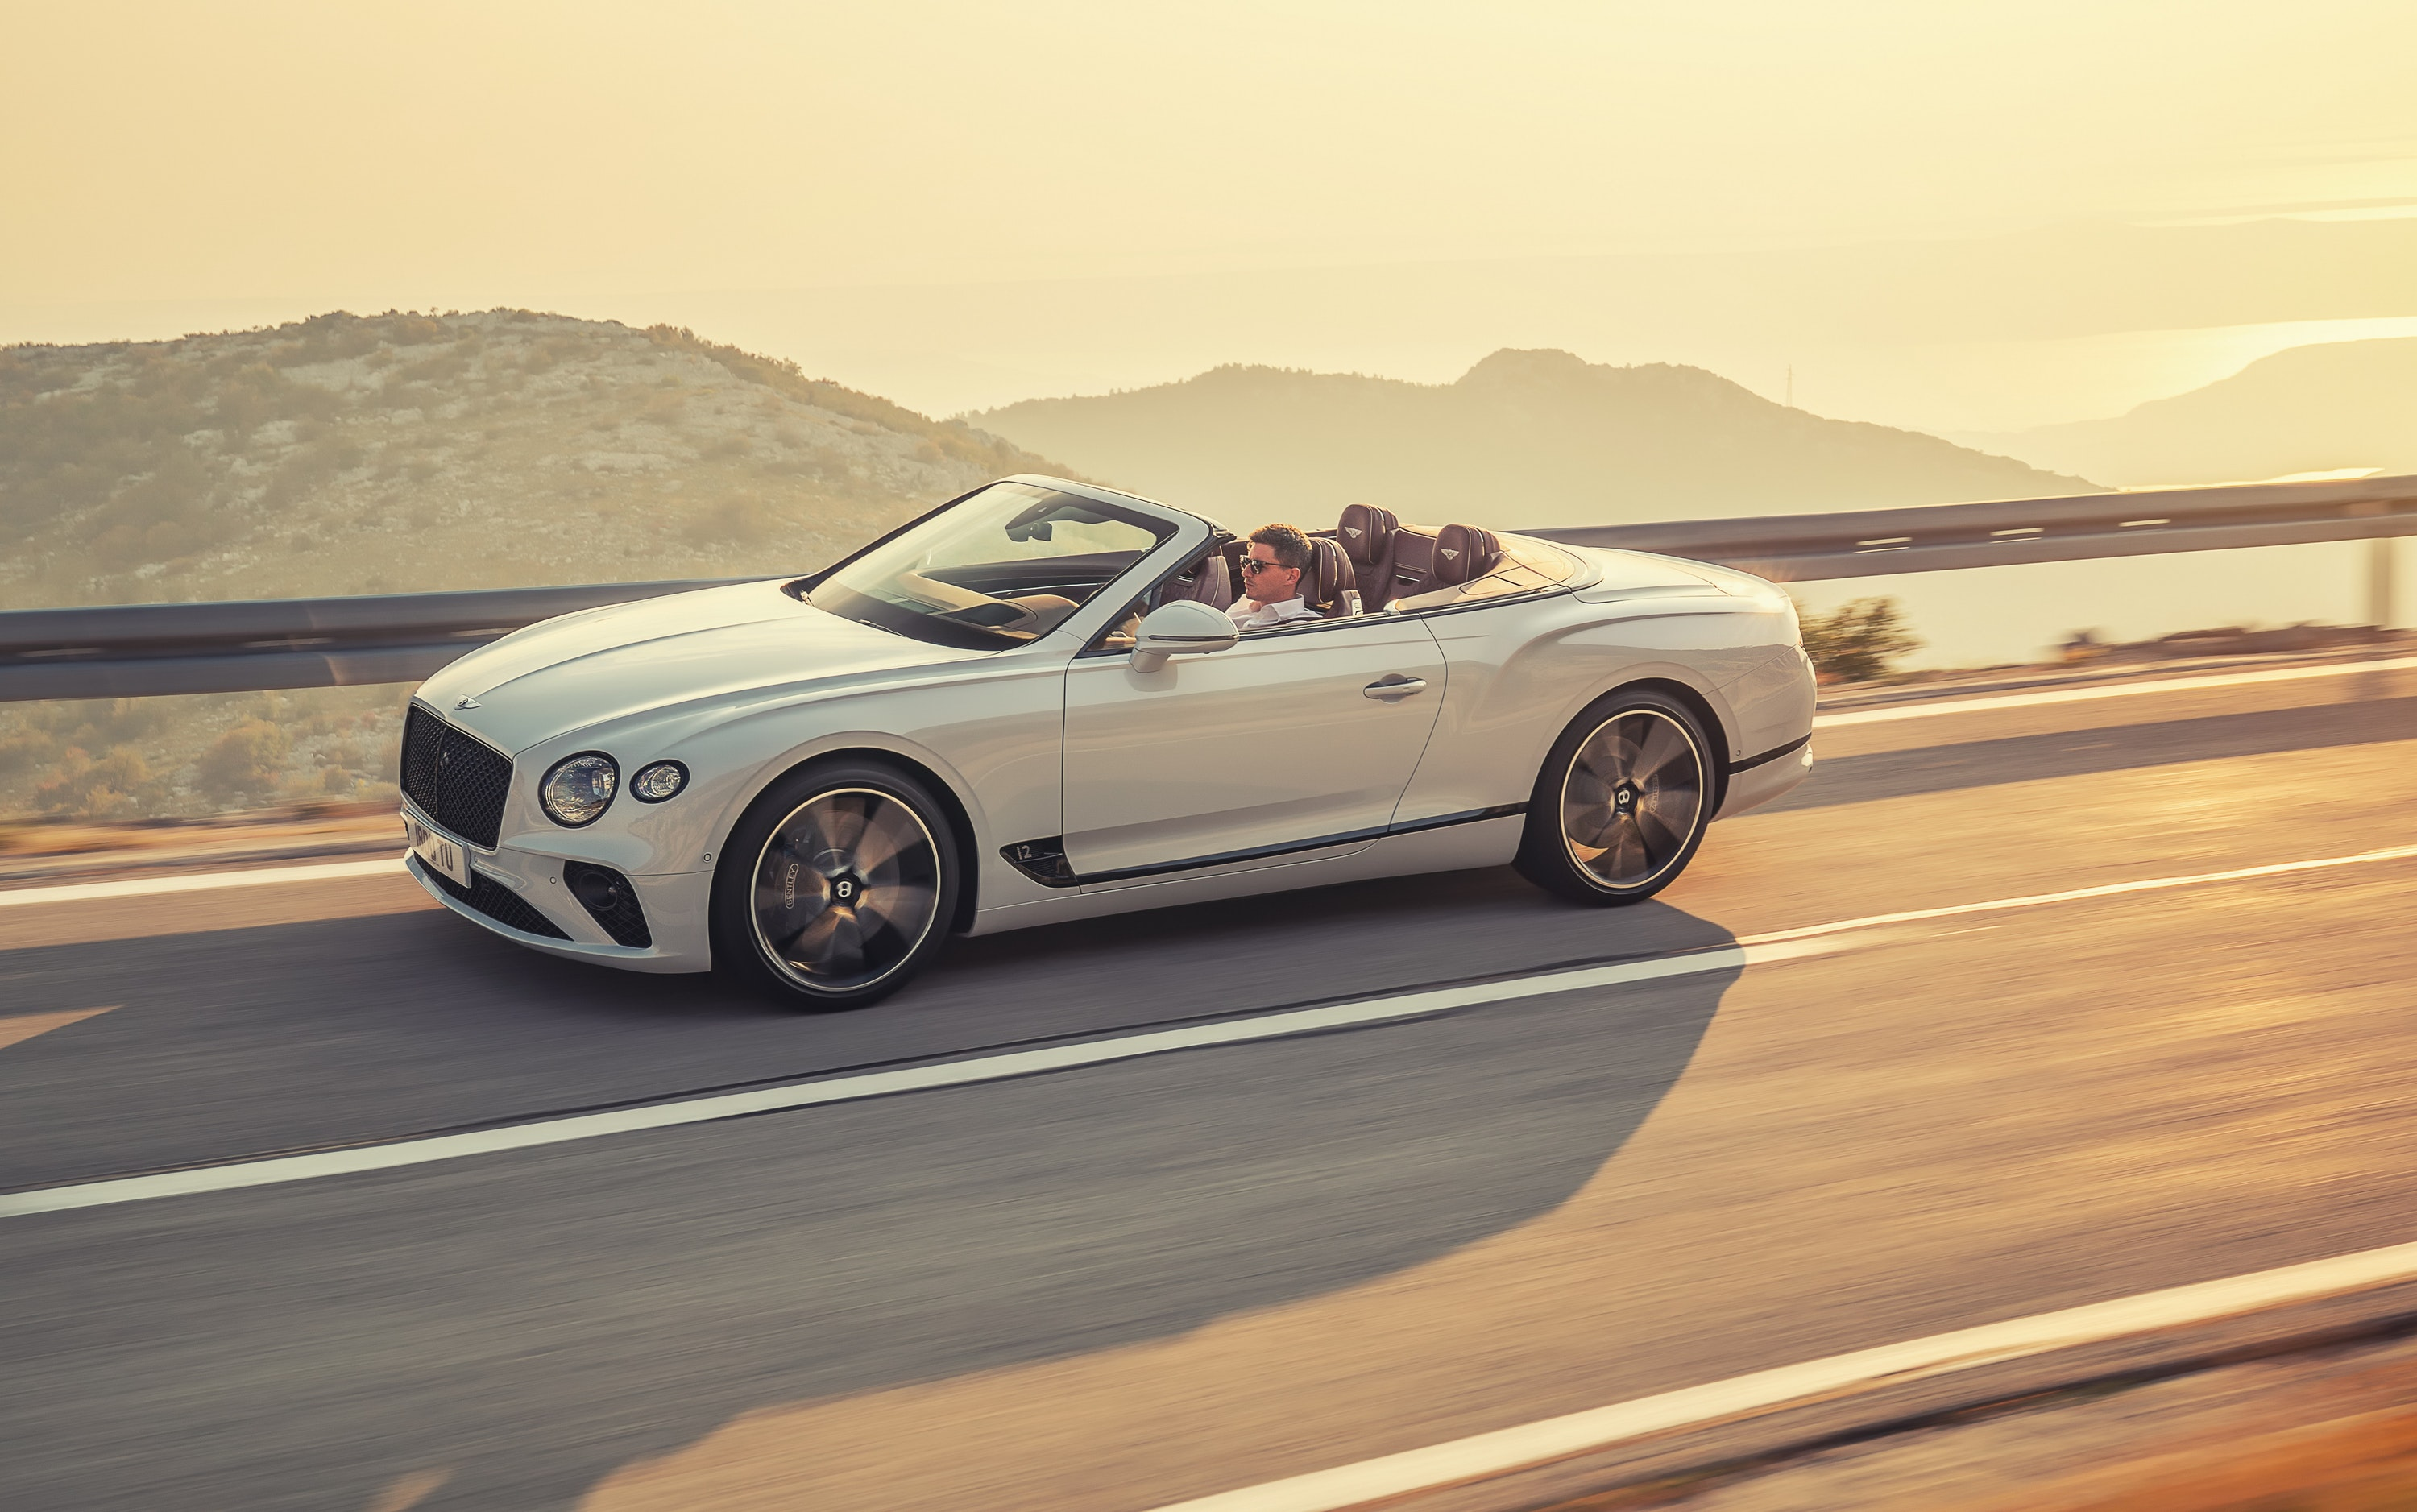 Bentley Continental GT Convertible driving on a road